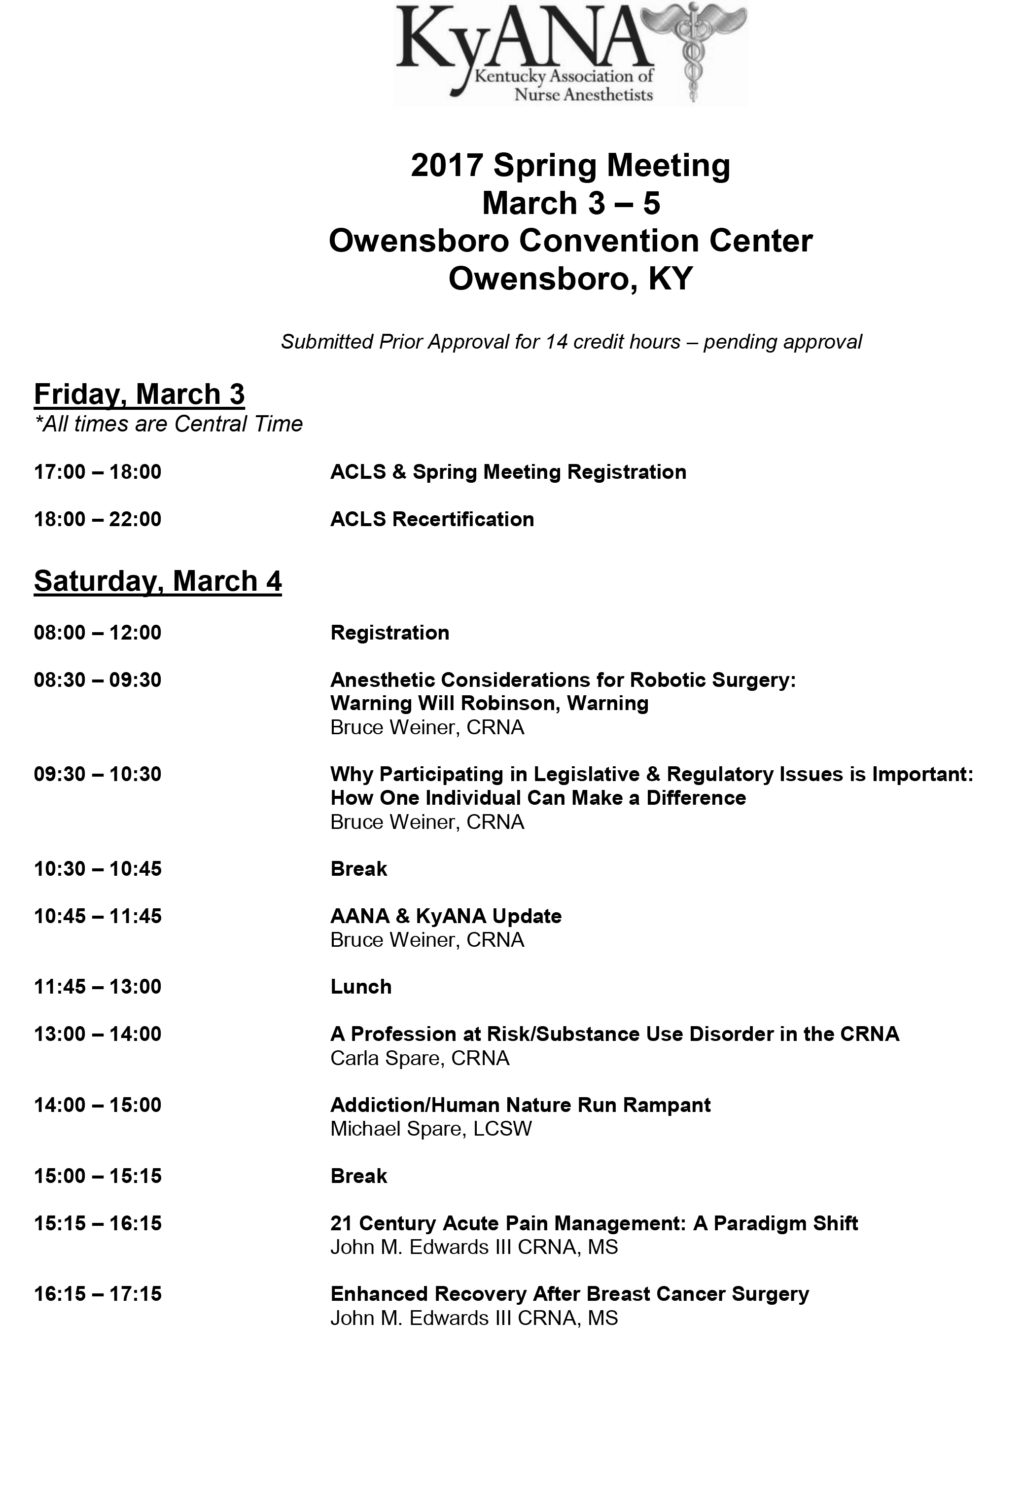 2017 KyANA (Kentucky Association of Nurse Anesthetists, Inc.) Spring Meeting